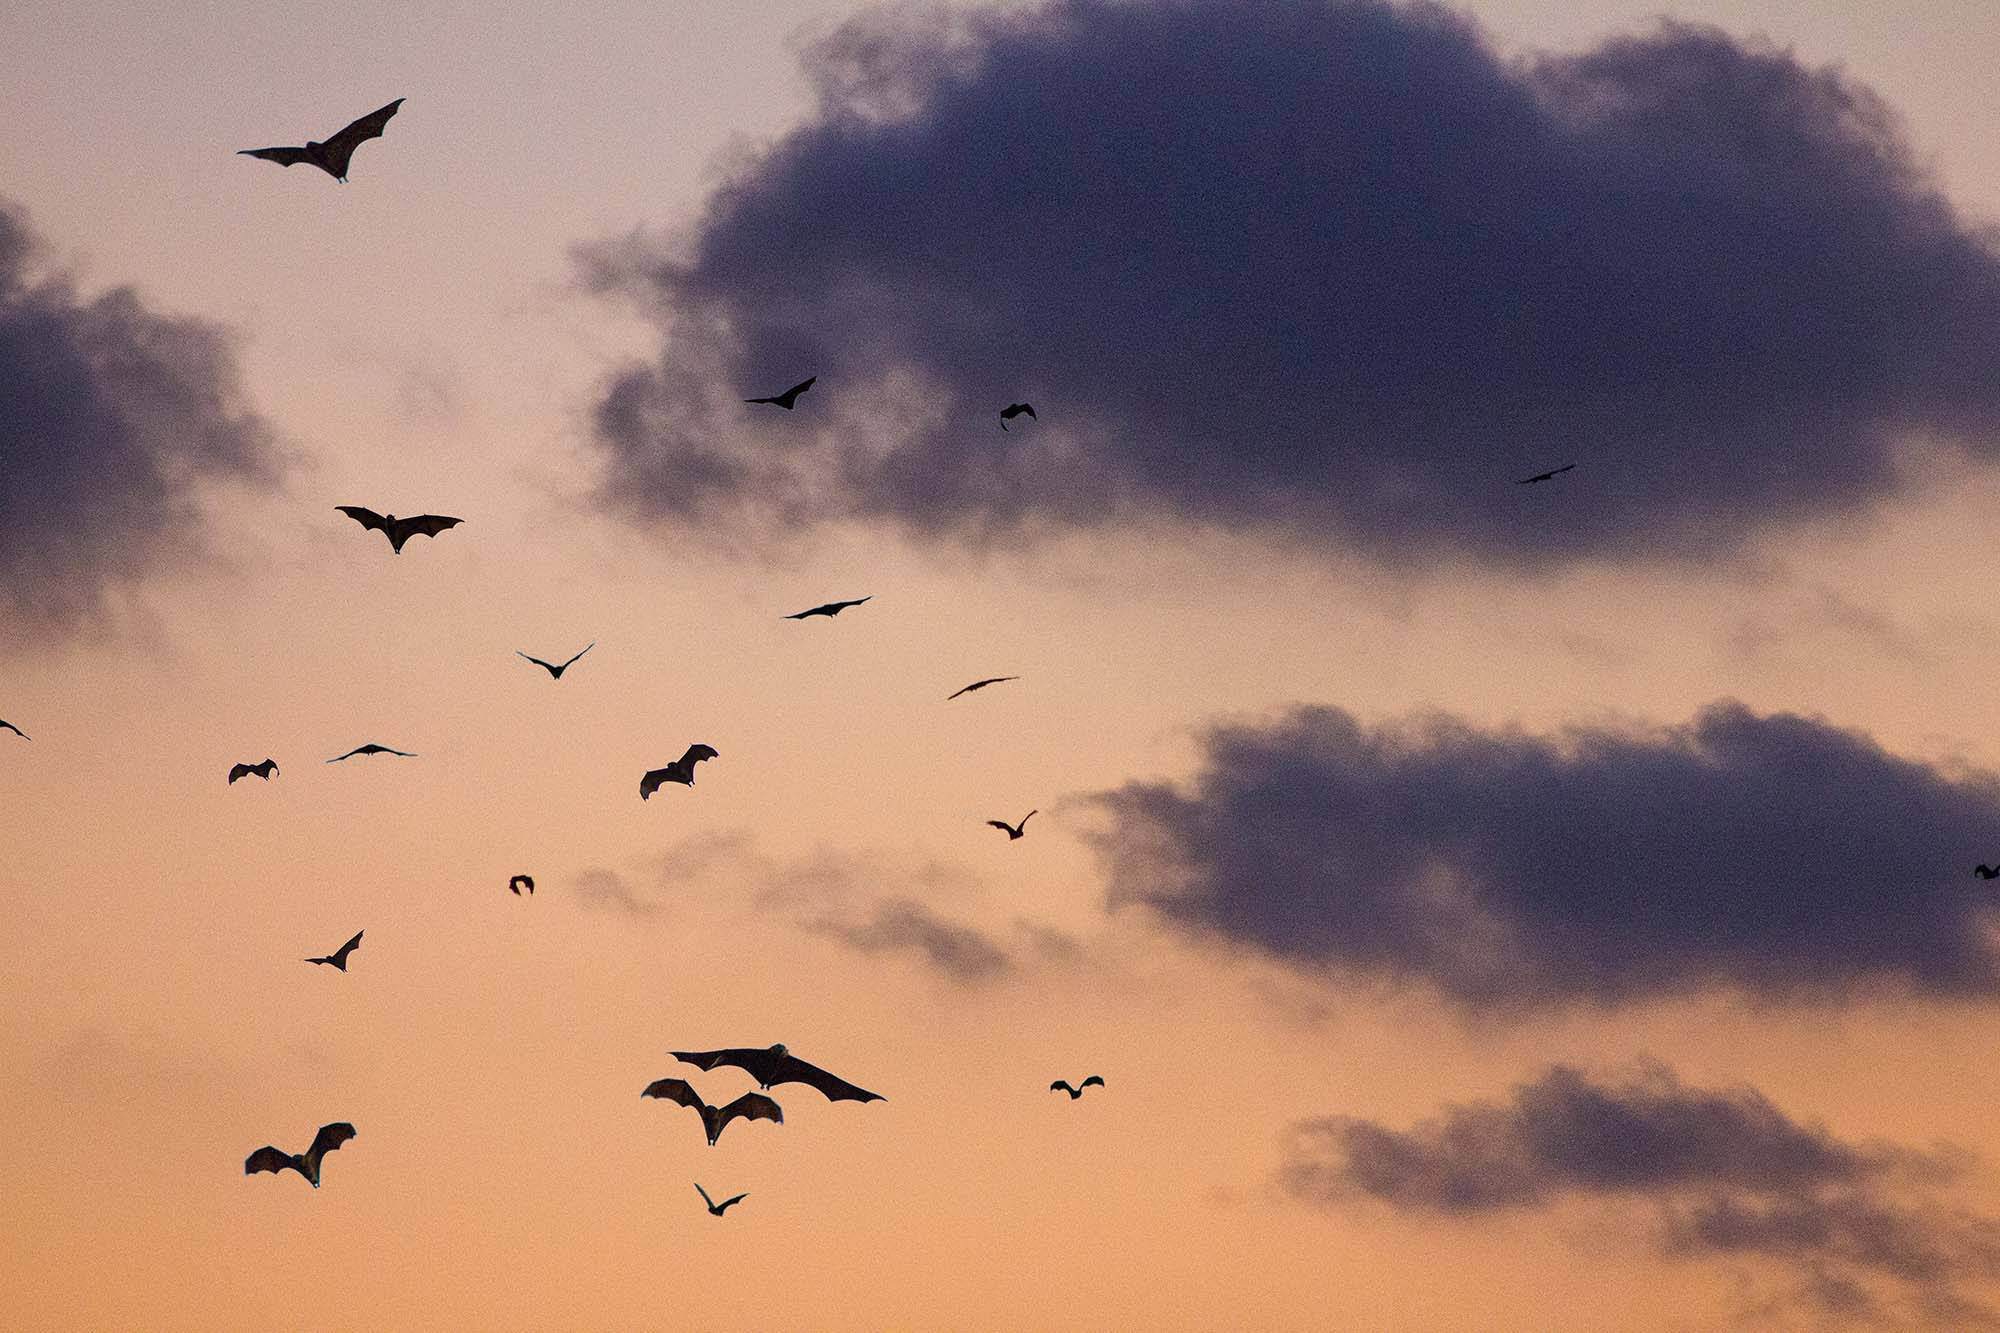 Bats flying in front of an orange sky at sunset.